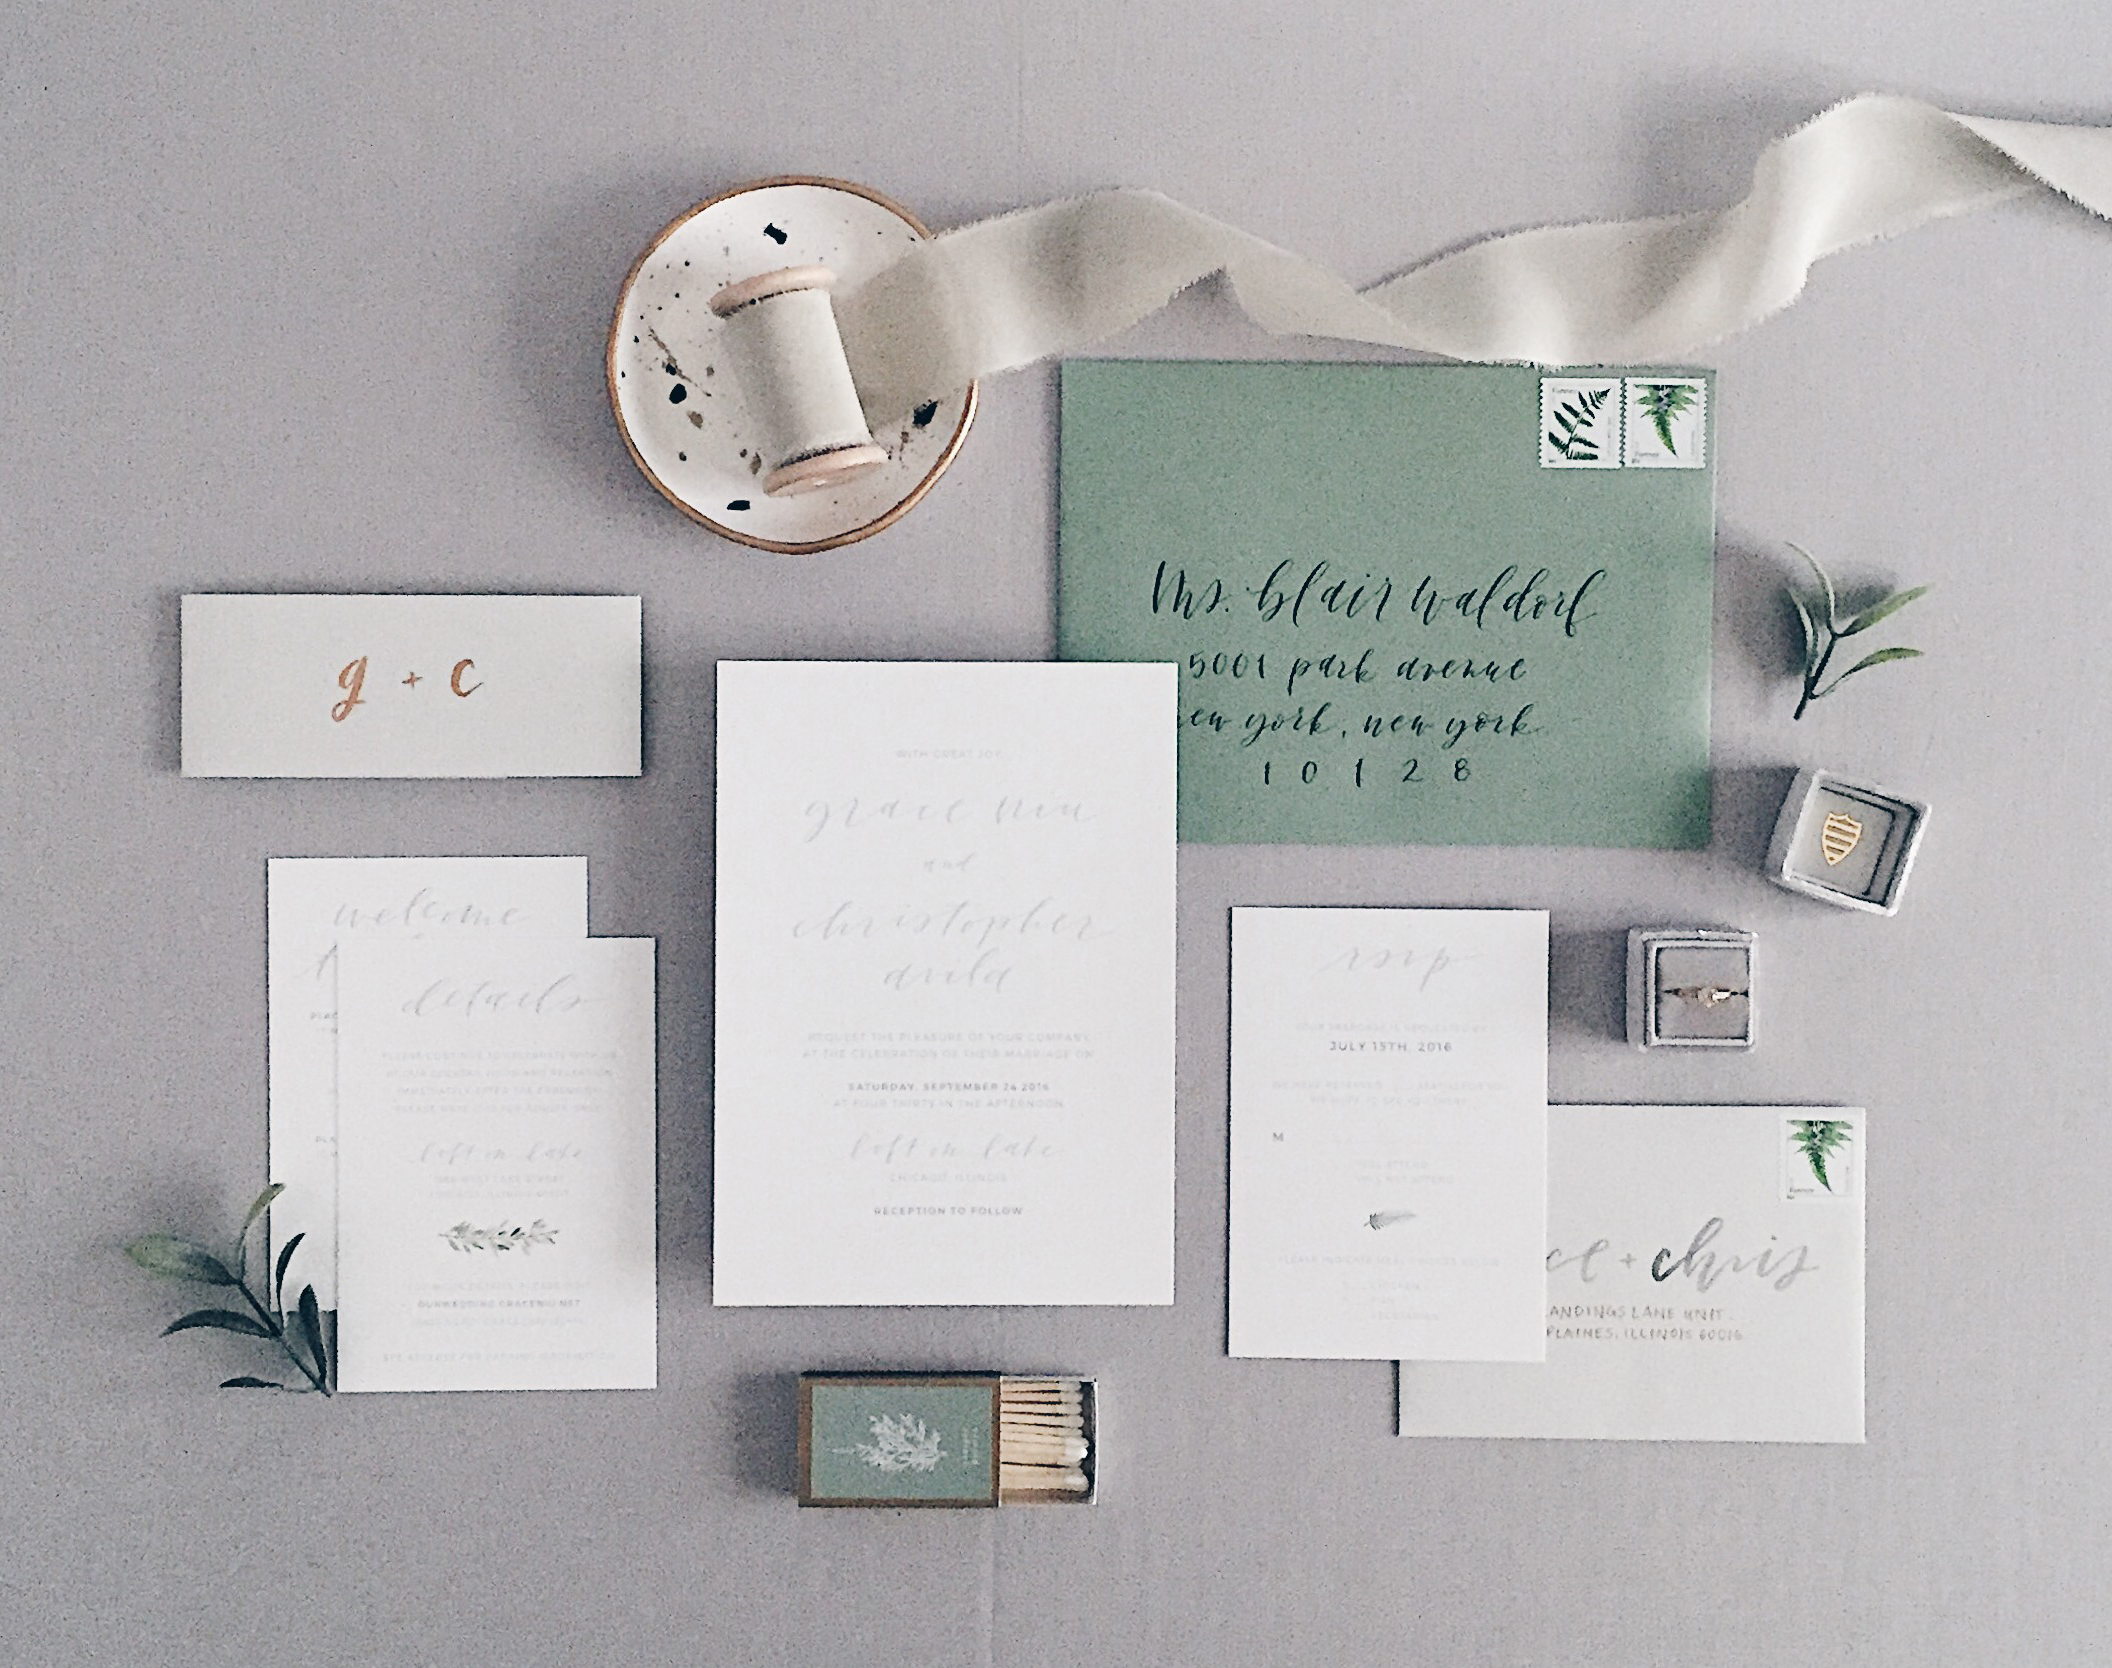 Design, calligraphy and styling by Grace Niu Design